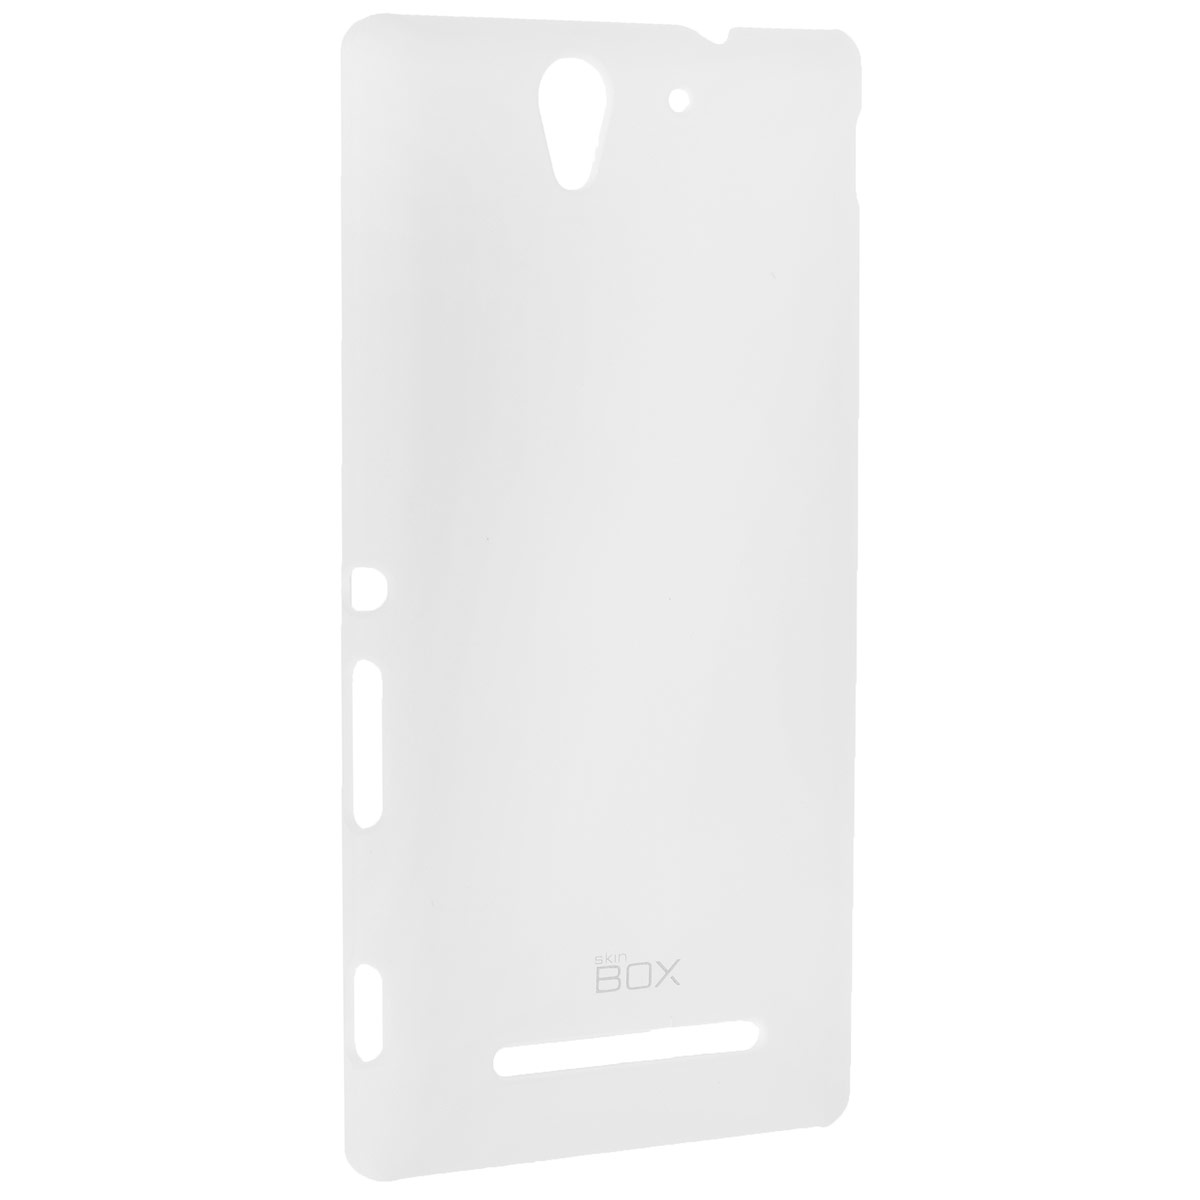 Skinbox Shield 4People чехол для Sony Xperia C3, White чехлы для телефонов skinbox накладка для htc desire 616 shield case 4people